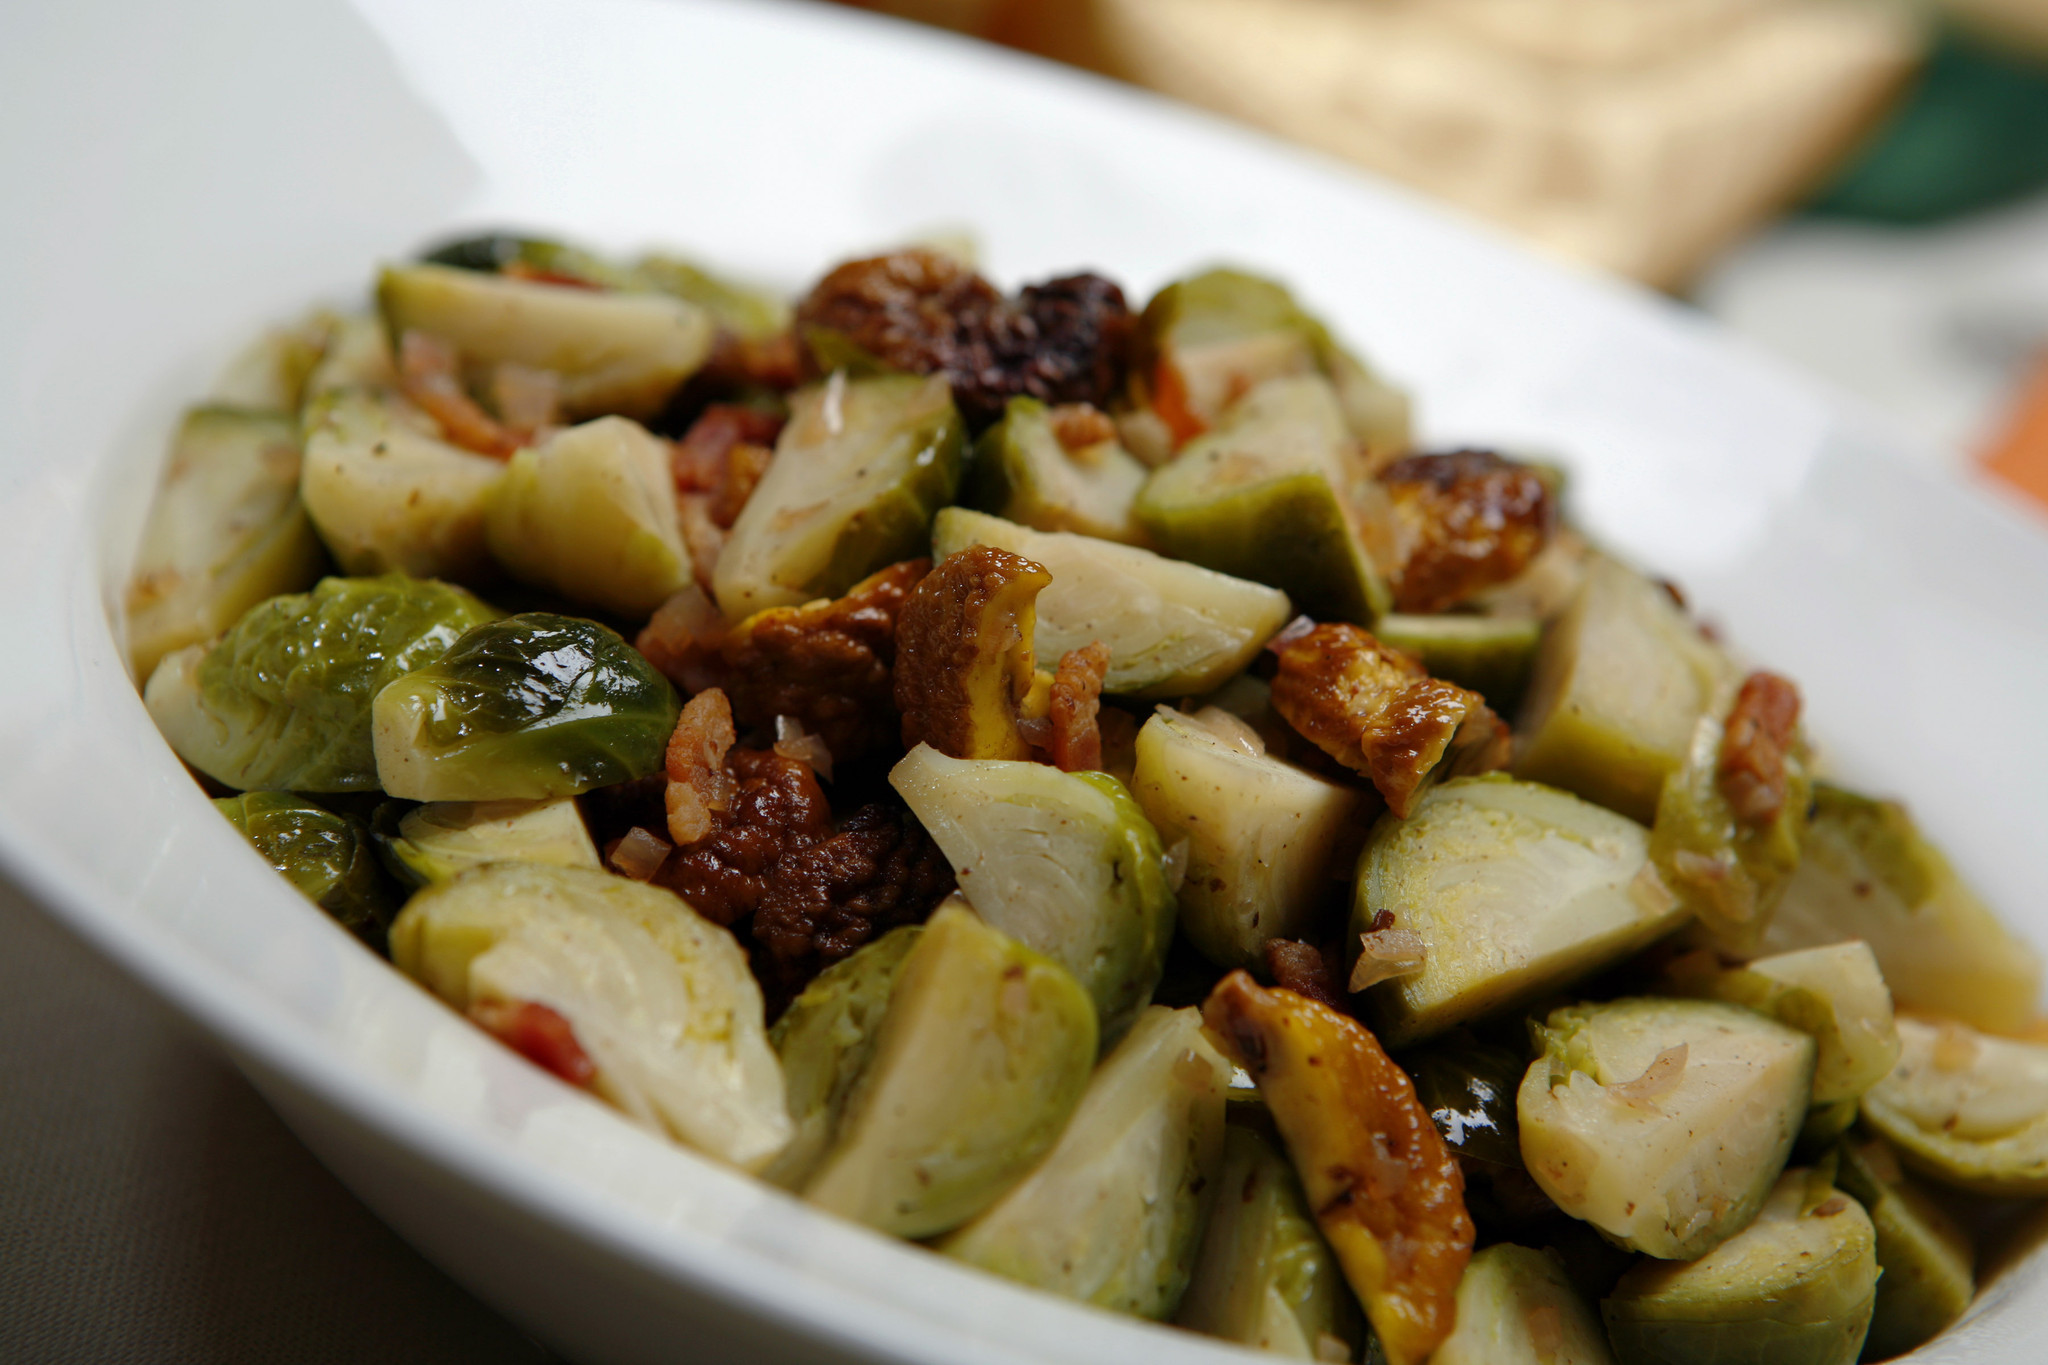 Photos: 97 great Thanksgiving recipes - Brussels sprouts braised with bacon and chestnuts